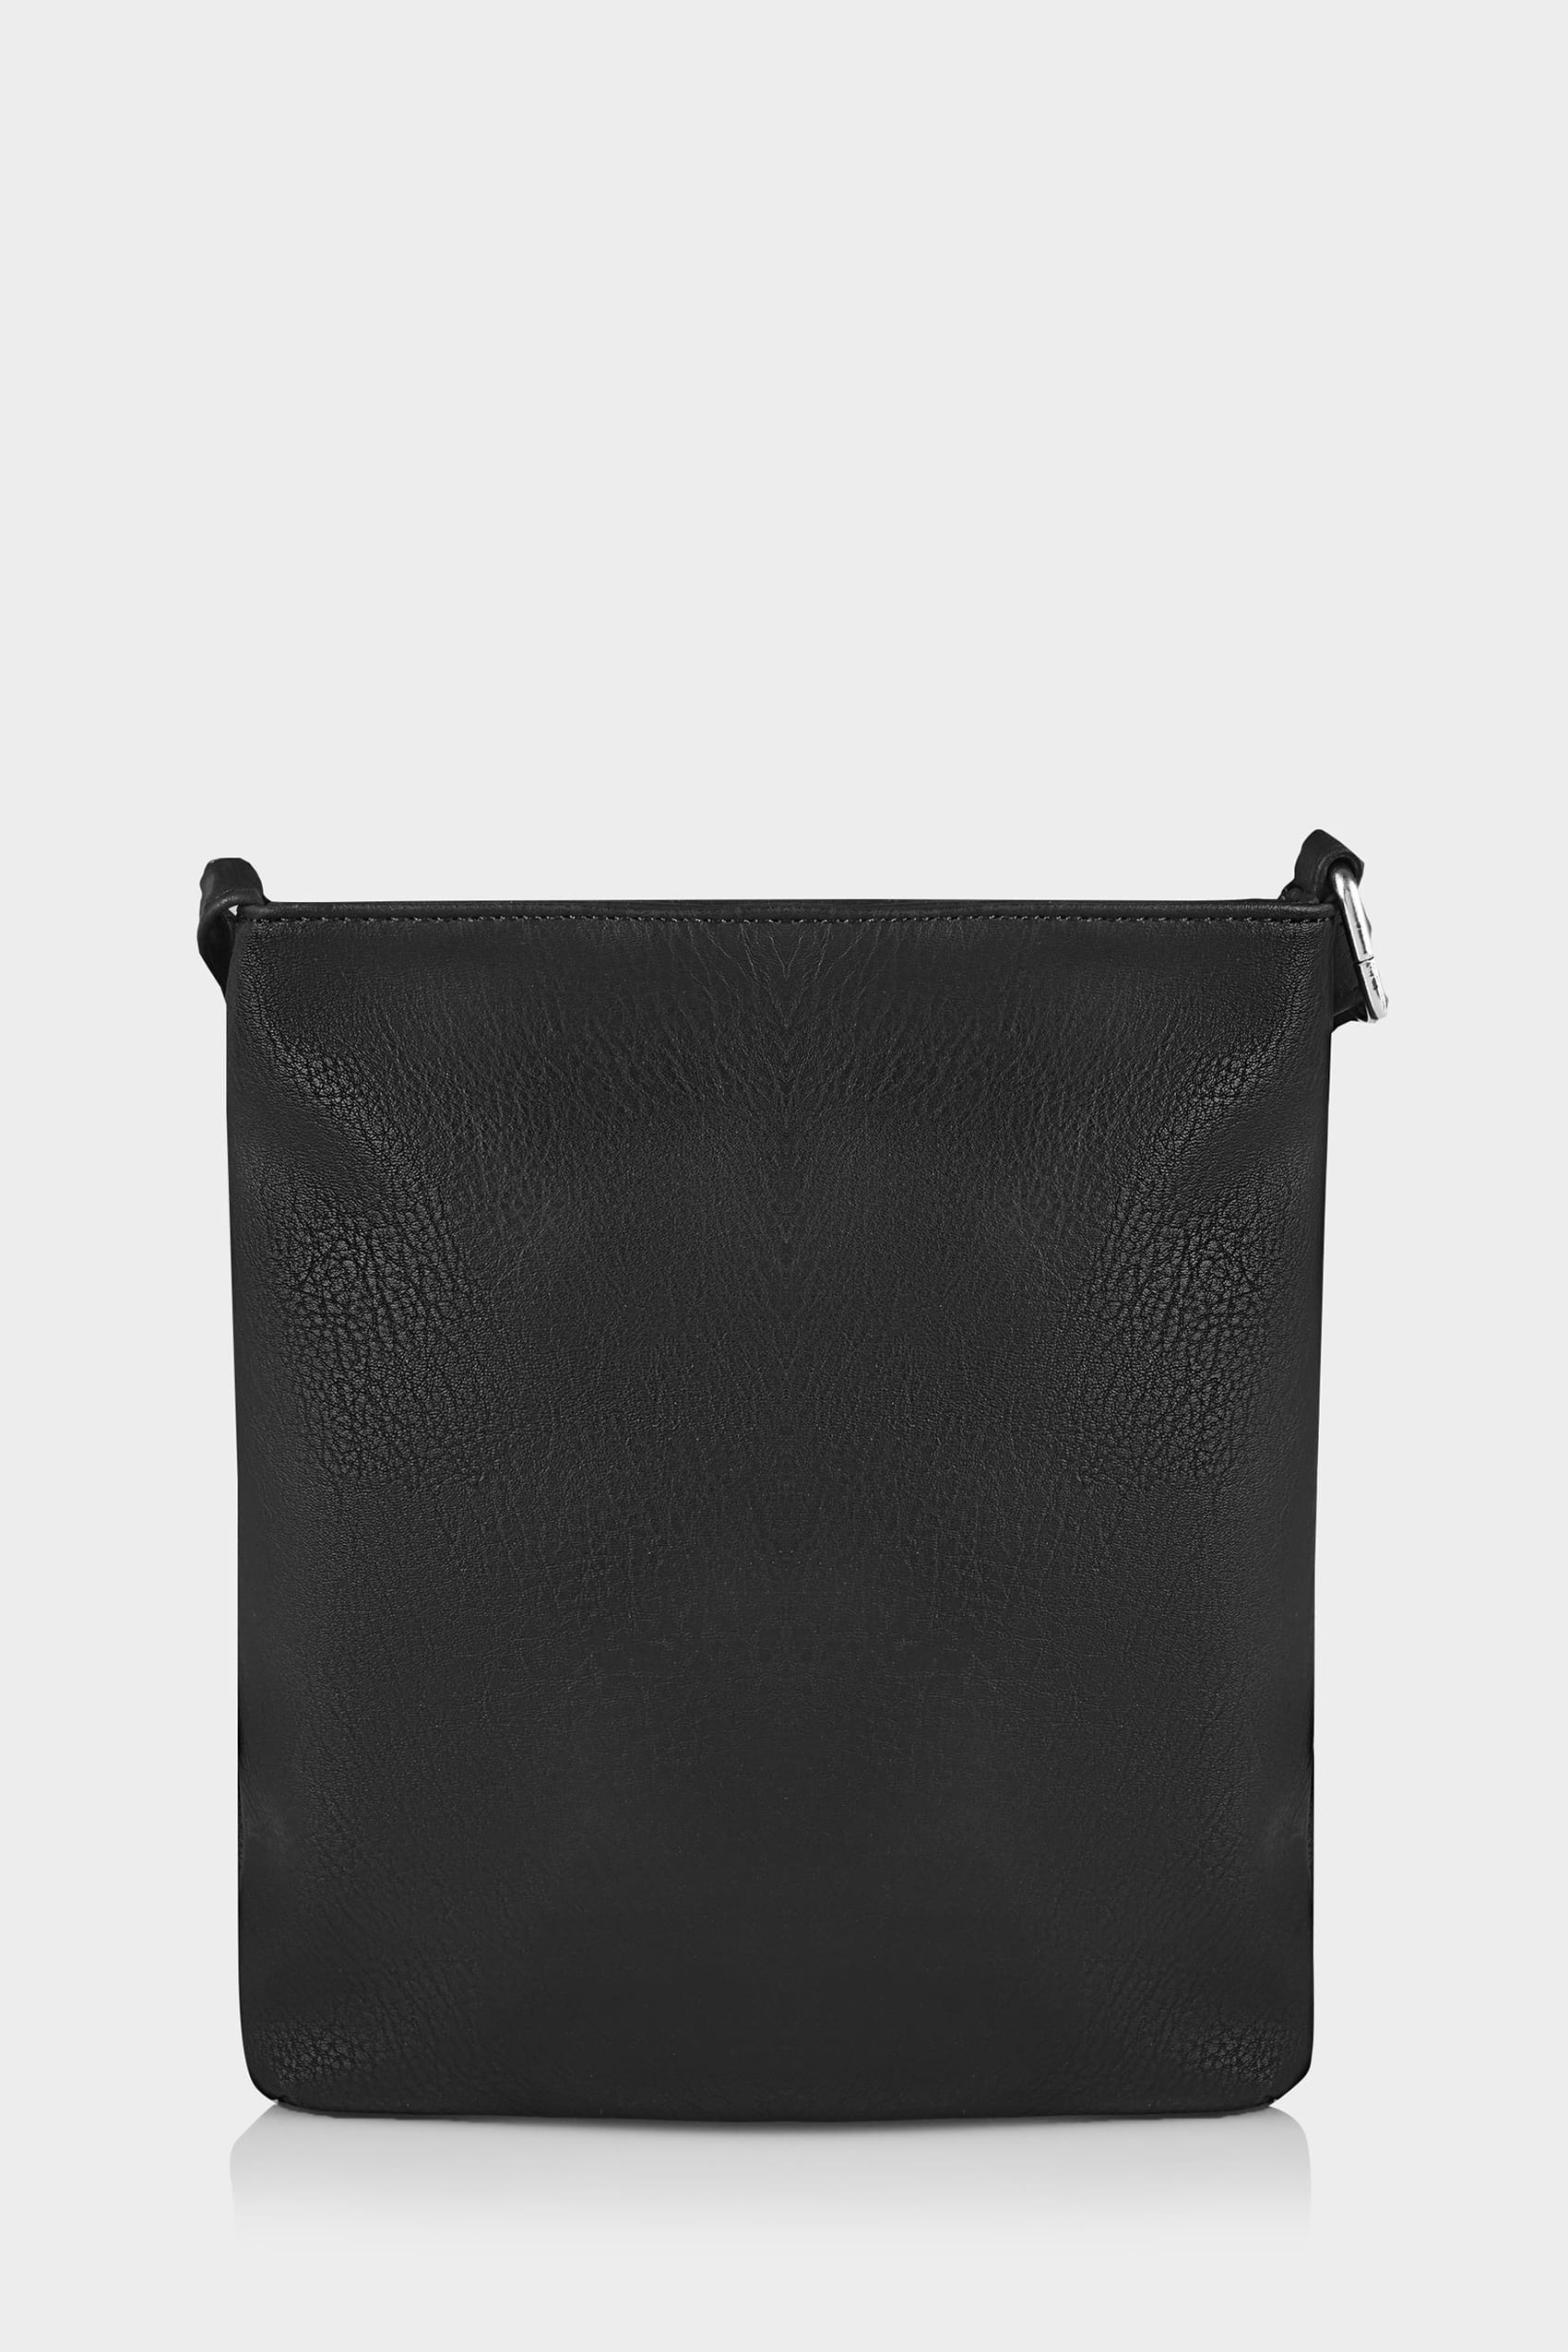 black cross body bag with zip front extended strap. Black Bedroom Furniture Sets. Home Design Ideas